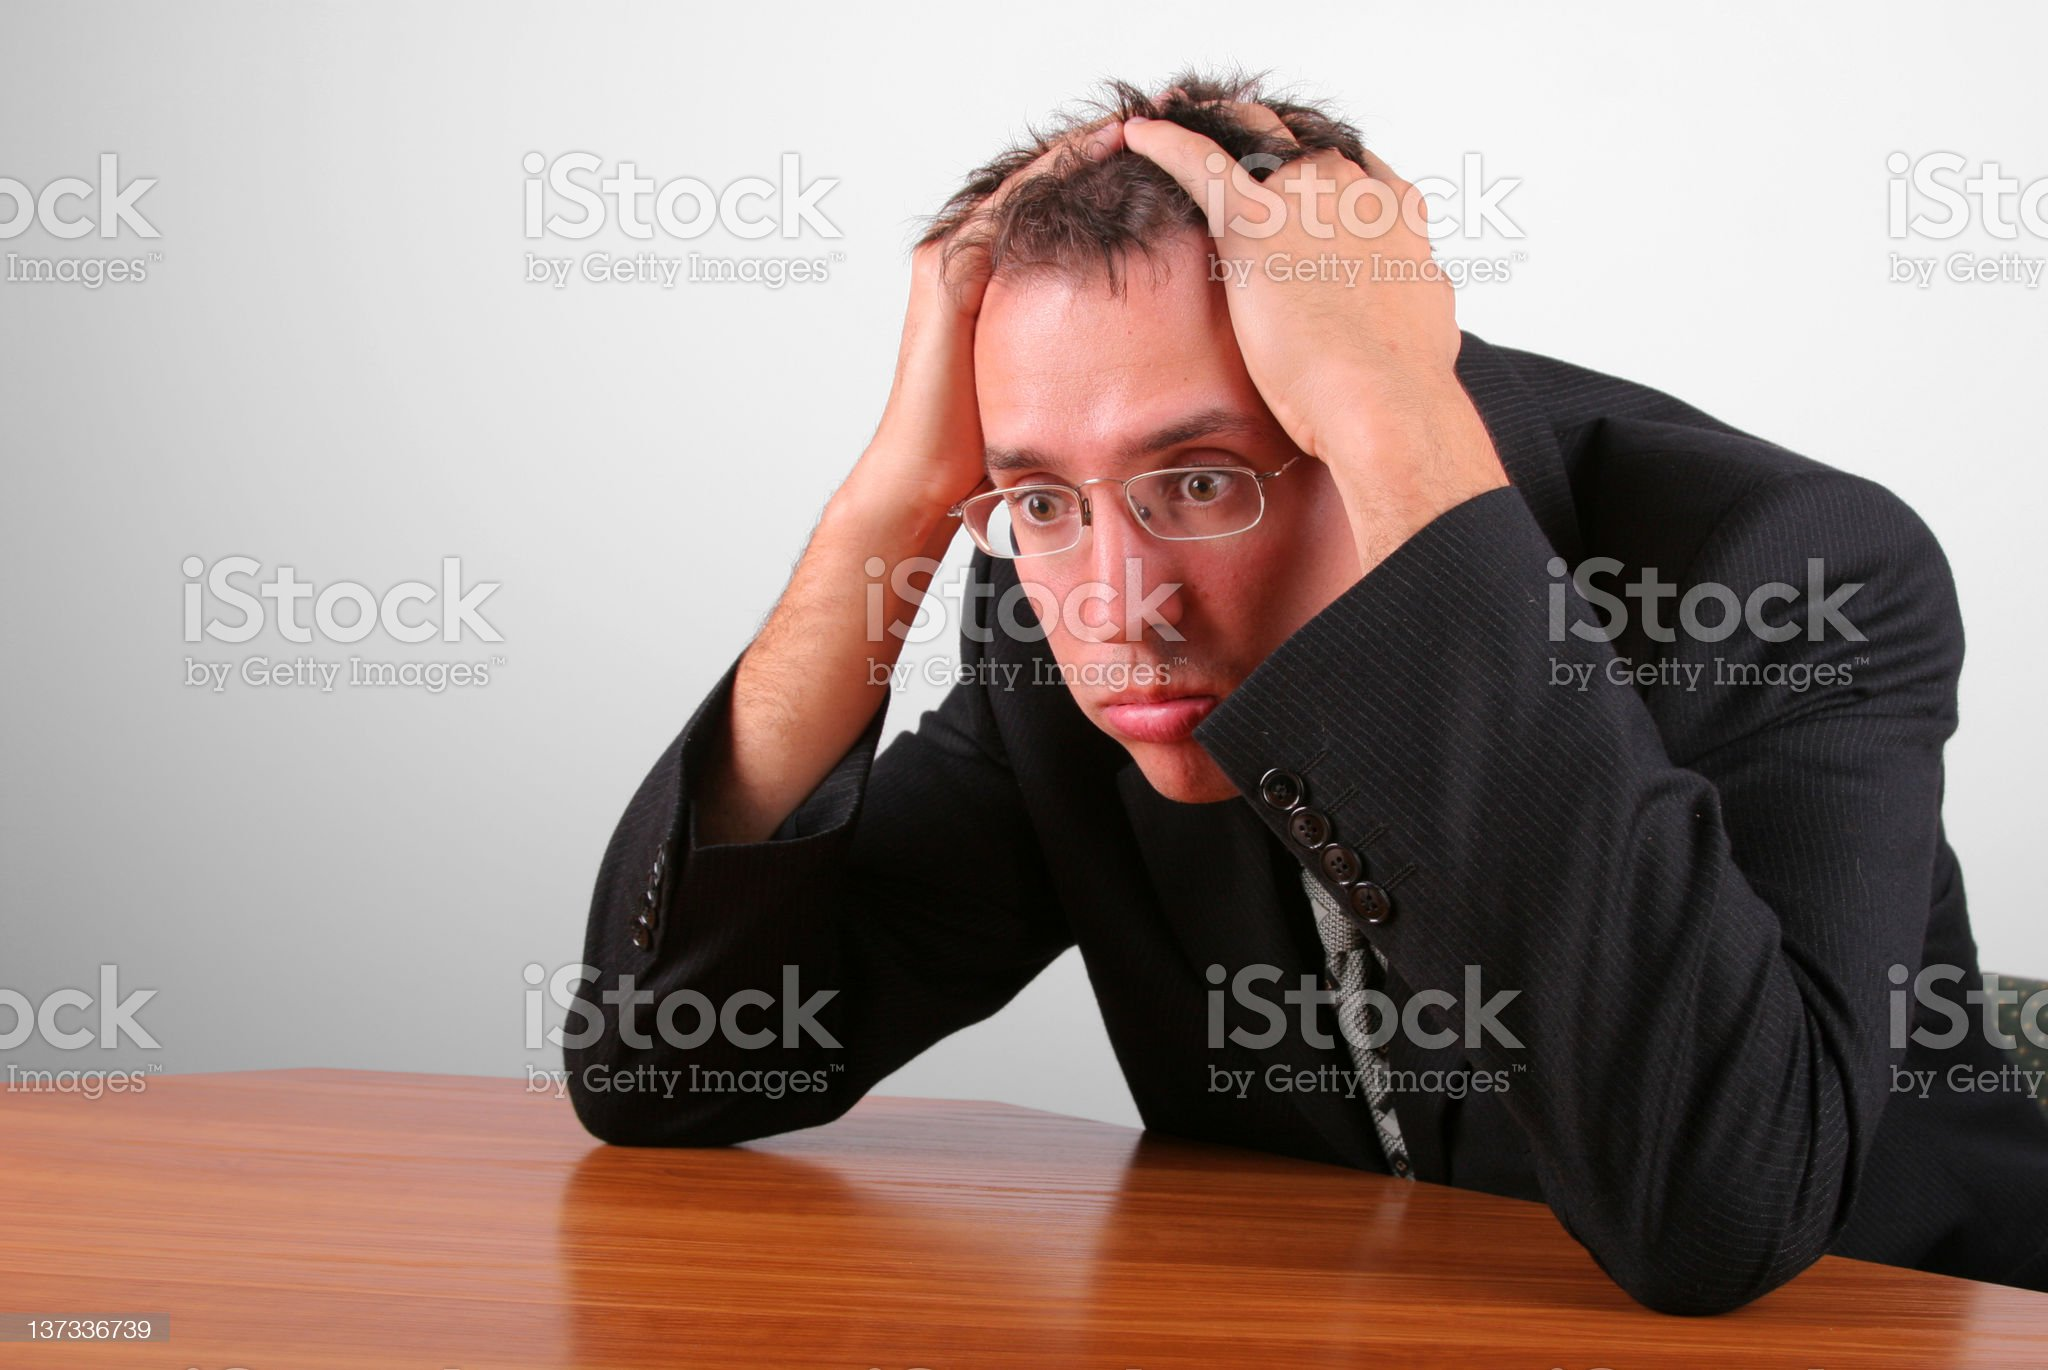 Businessman with troubled expression and hands on head royalty-free stock photo